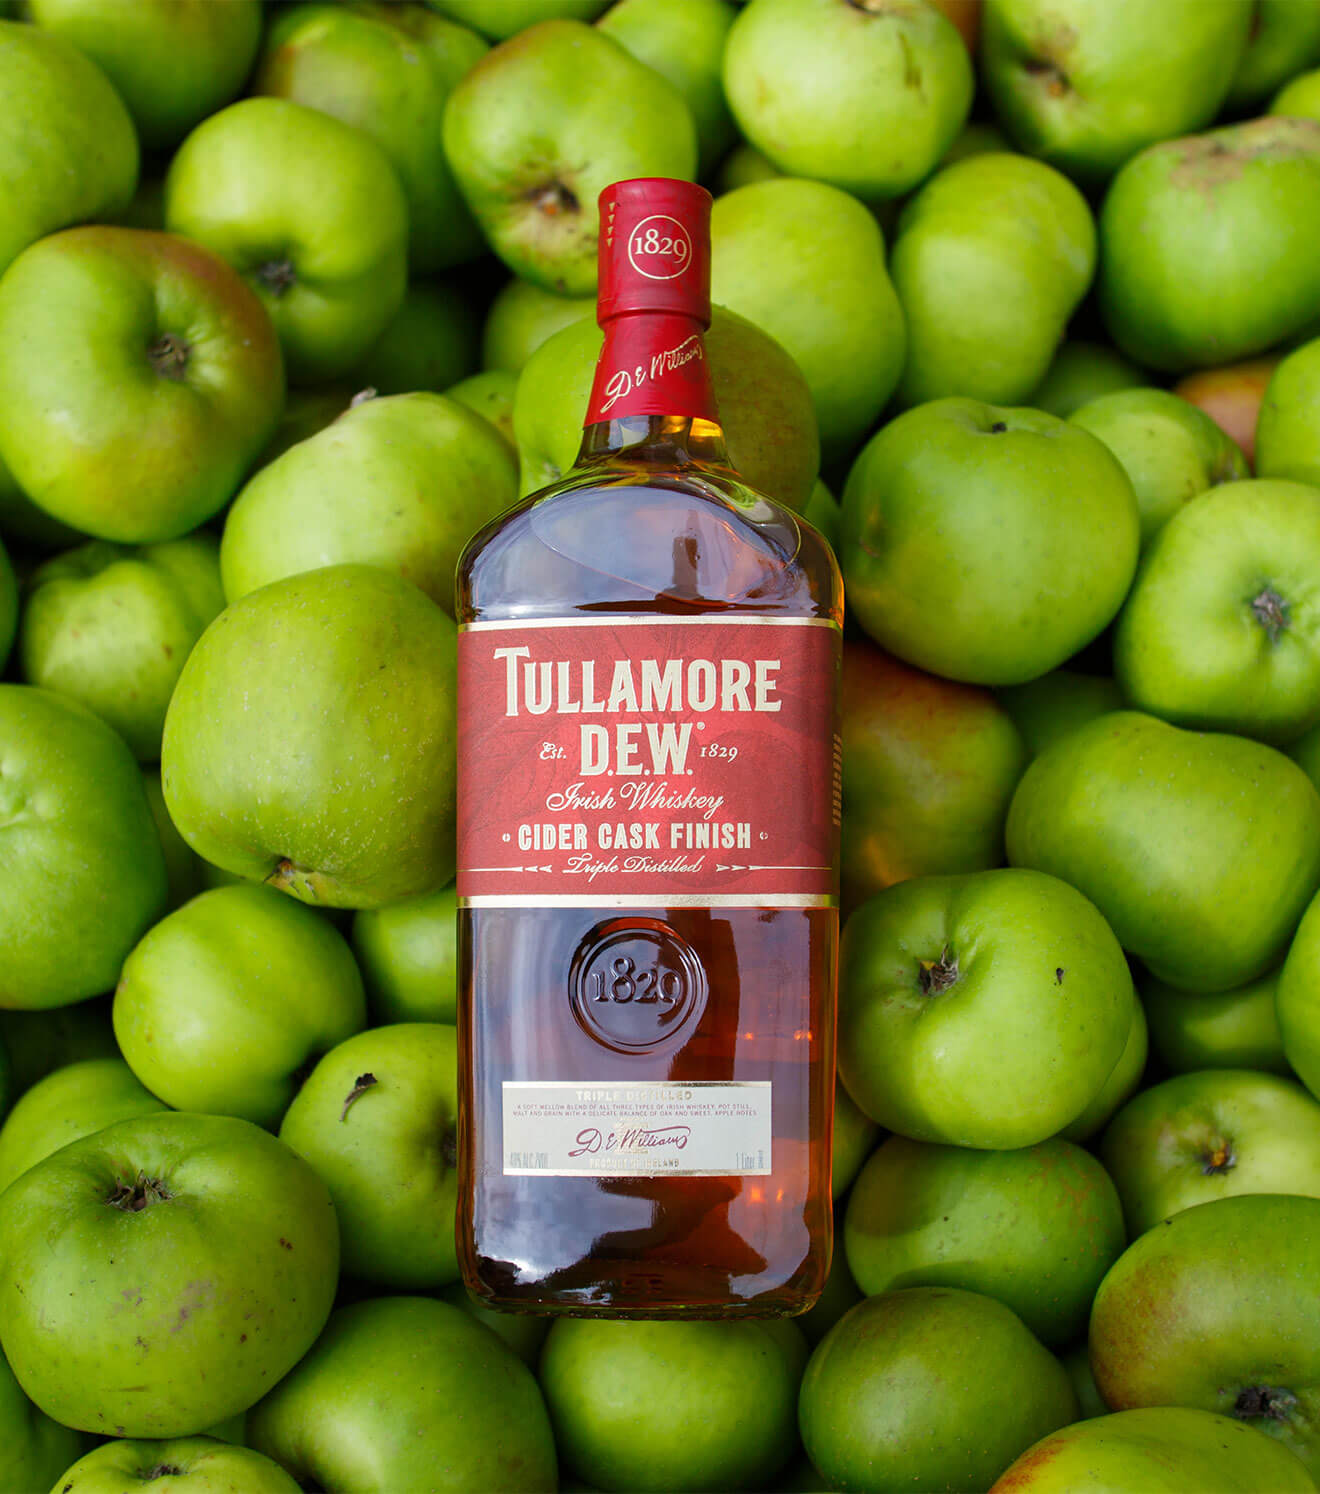 Tullamore D.E.W. Irish Whiskey Cider Cask, bottle, green apples